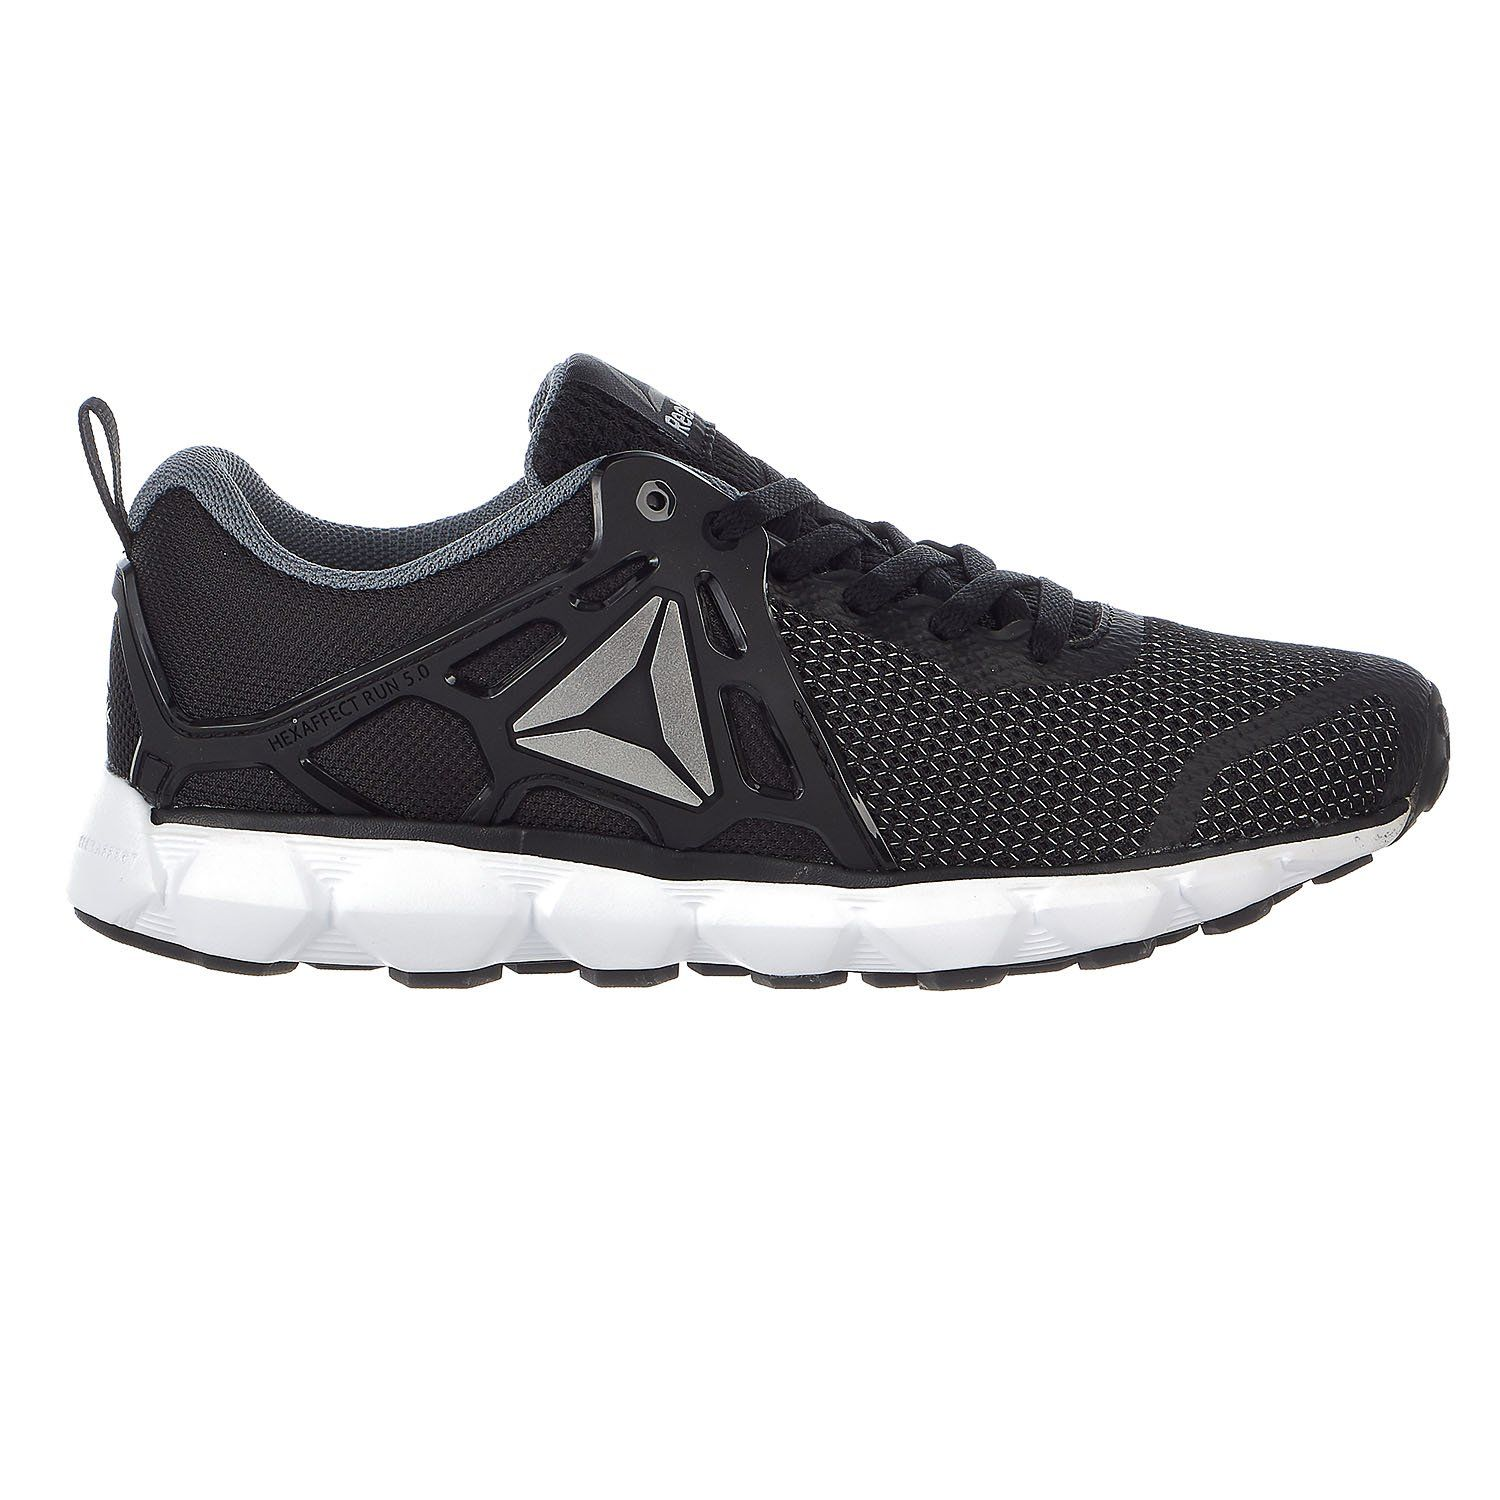 94cd5a0976388f Reebok Women s Hexaffect 5.0 Mtm Running Shoe